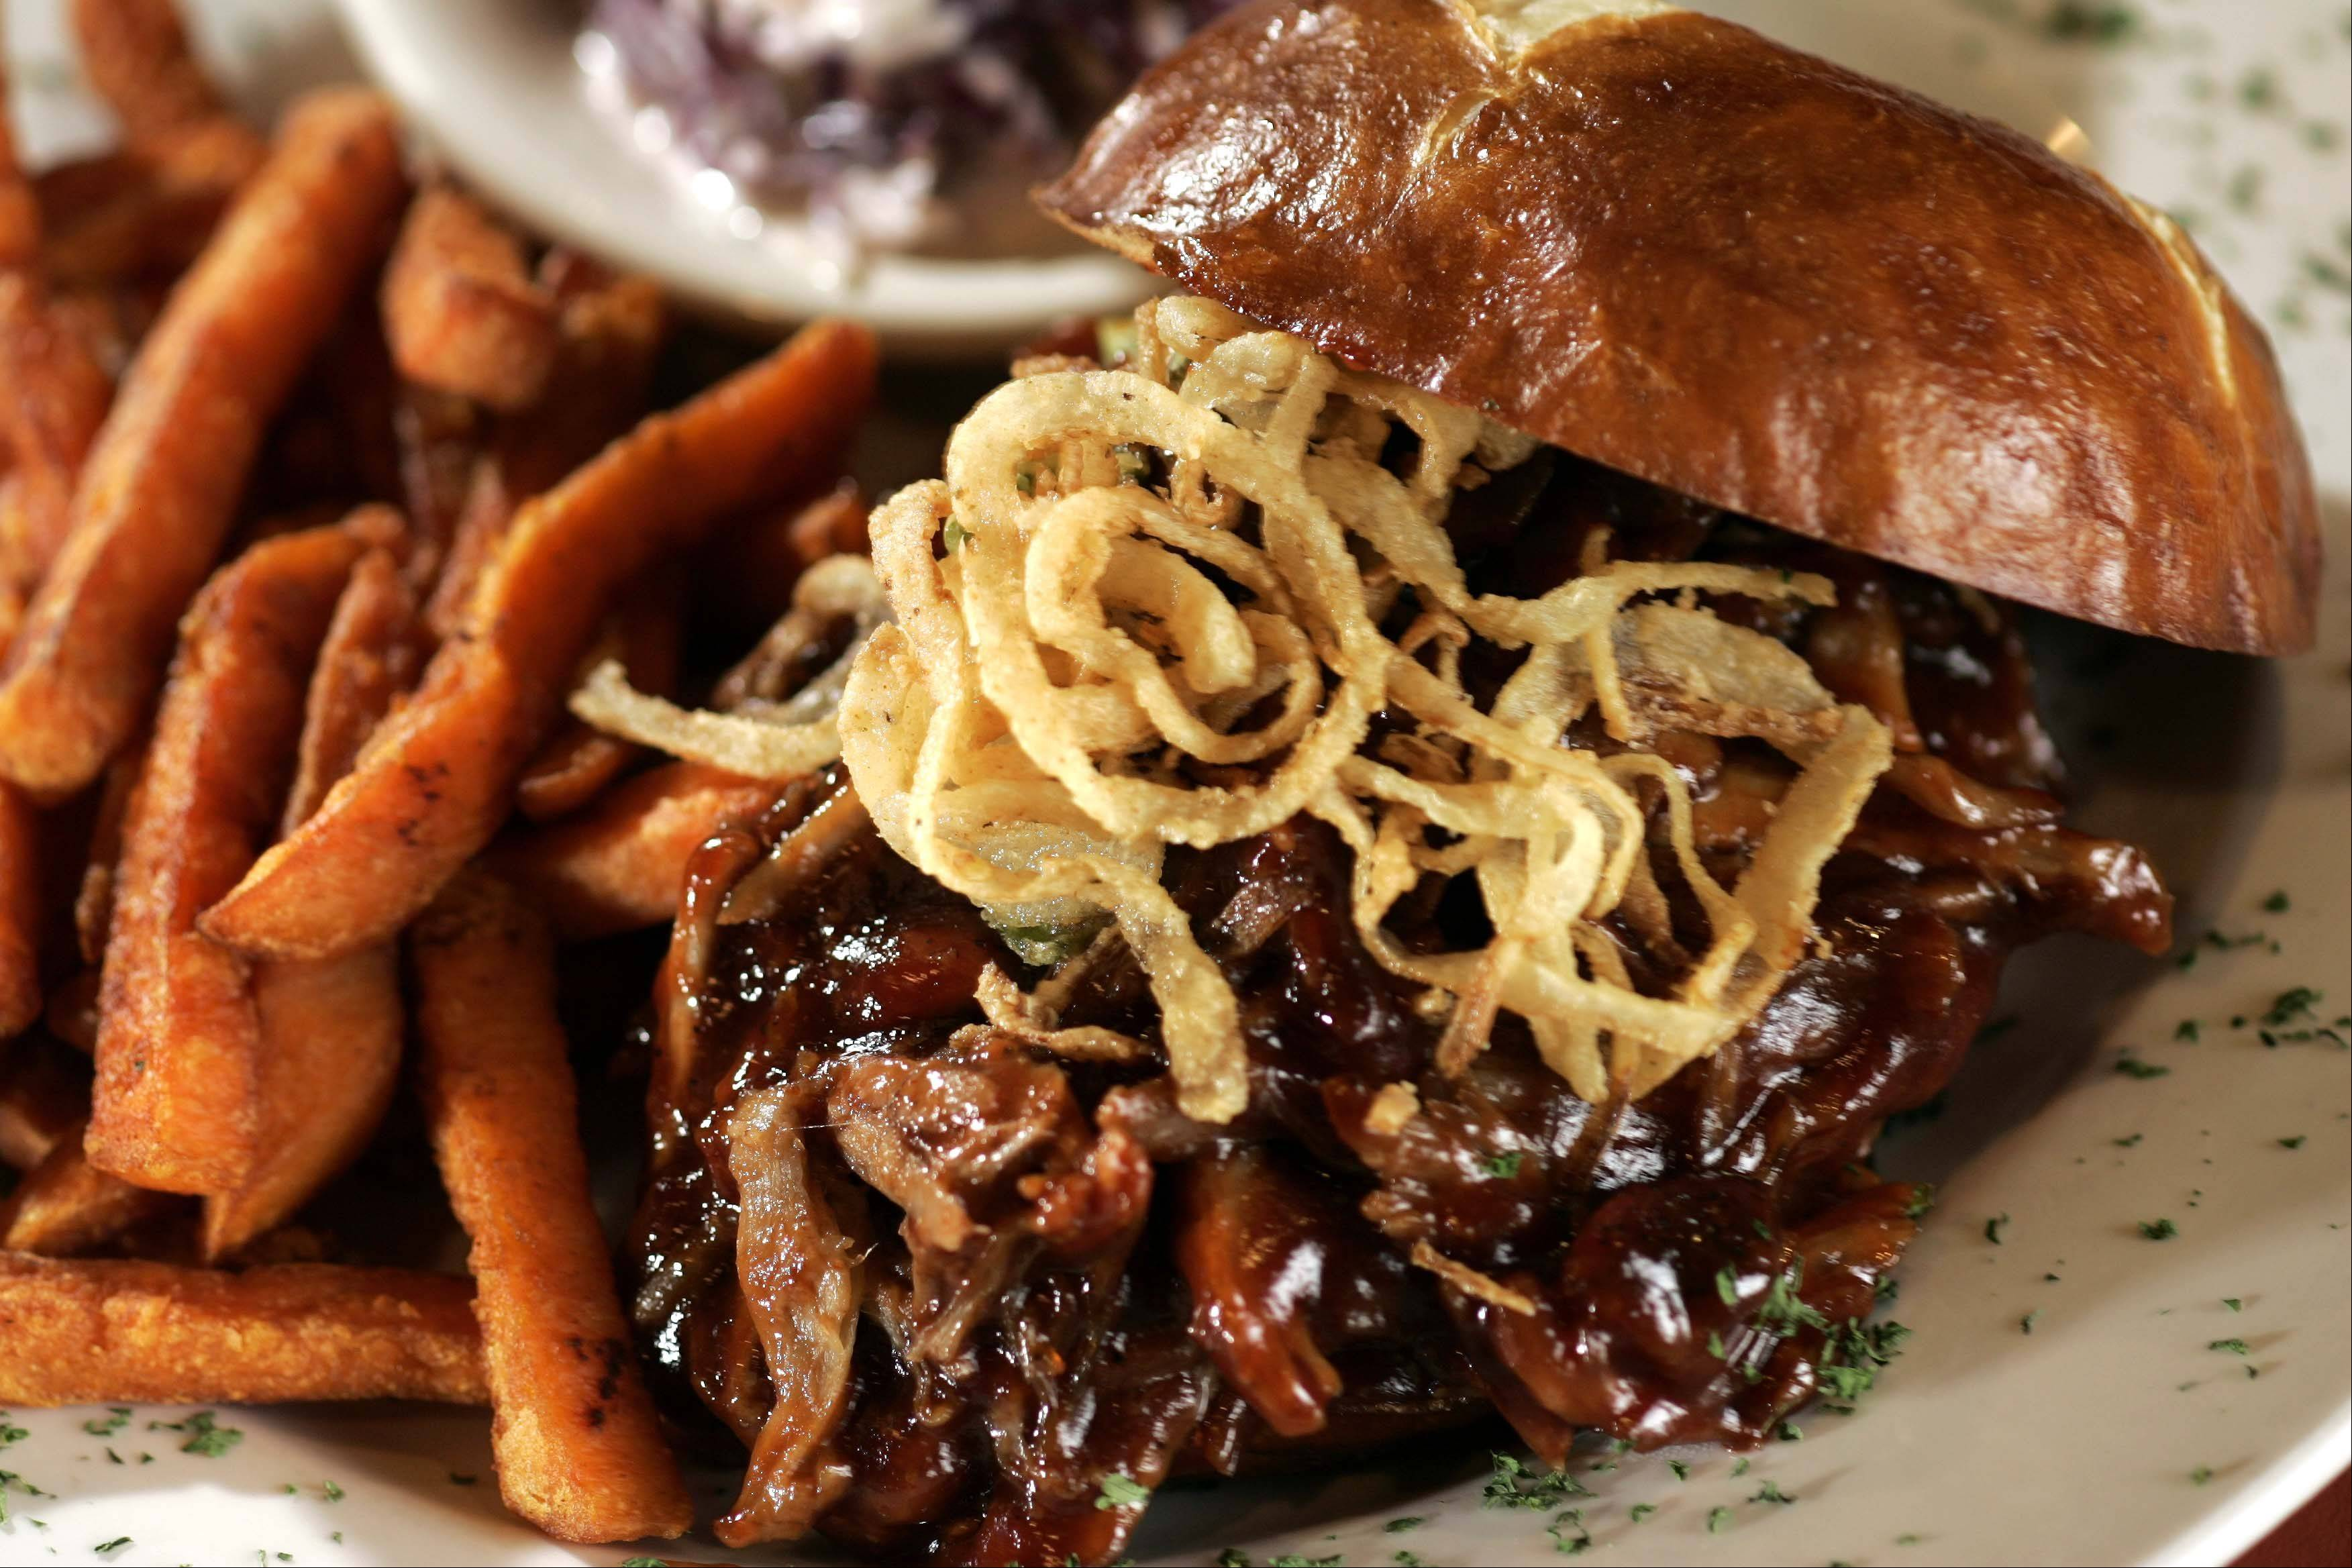 Onion straws top the pulled pork sandwich at West End Restaurant & Bar.